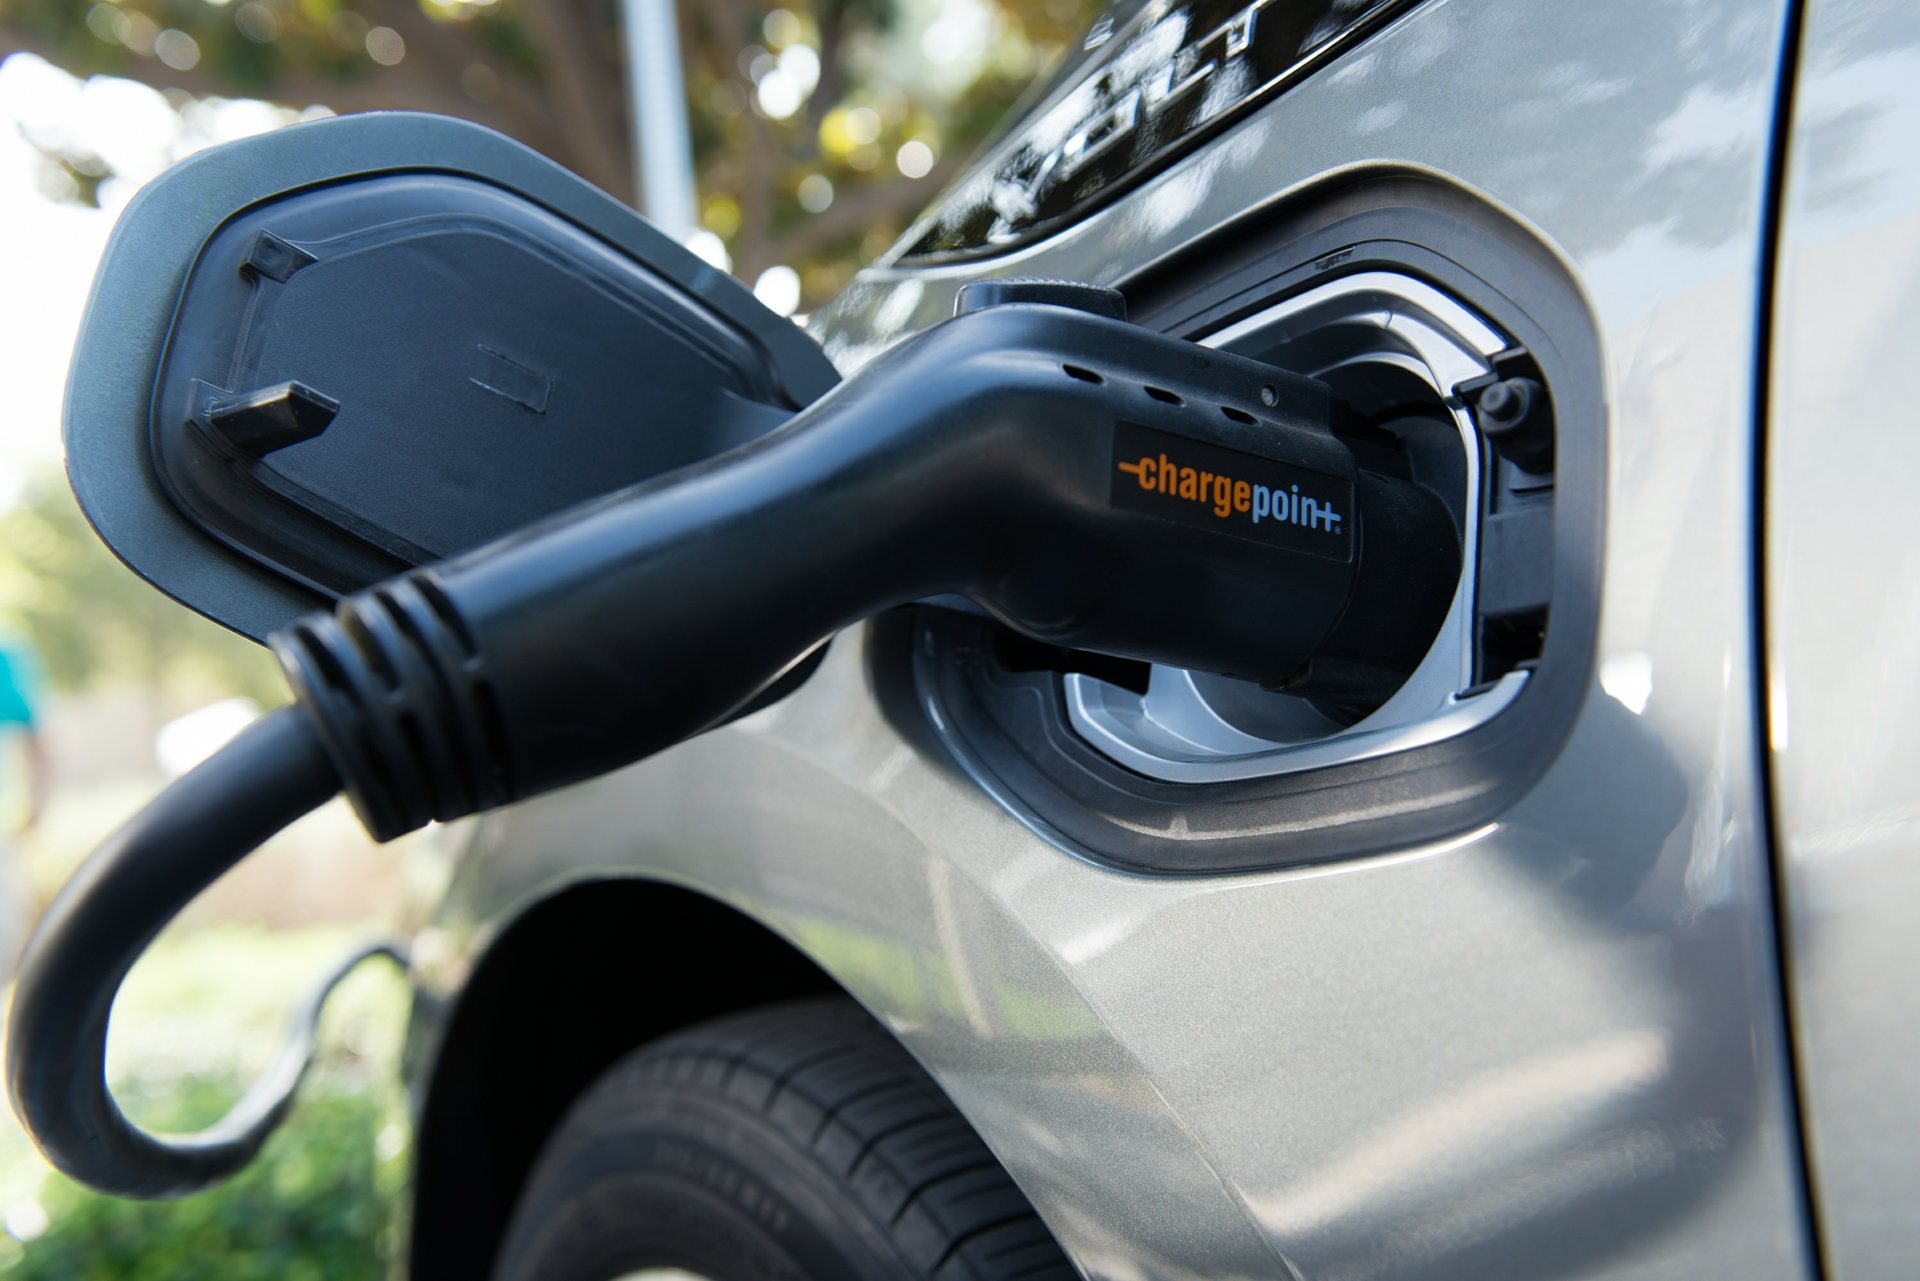 Charge Ready 2 will add approximately 38,000 new electric car chargers throughout SCE's service area.